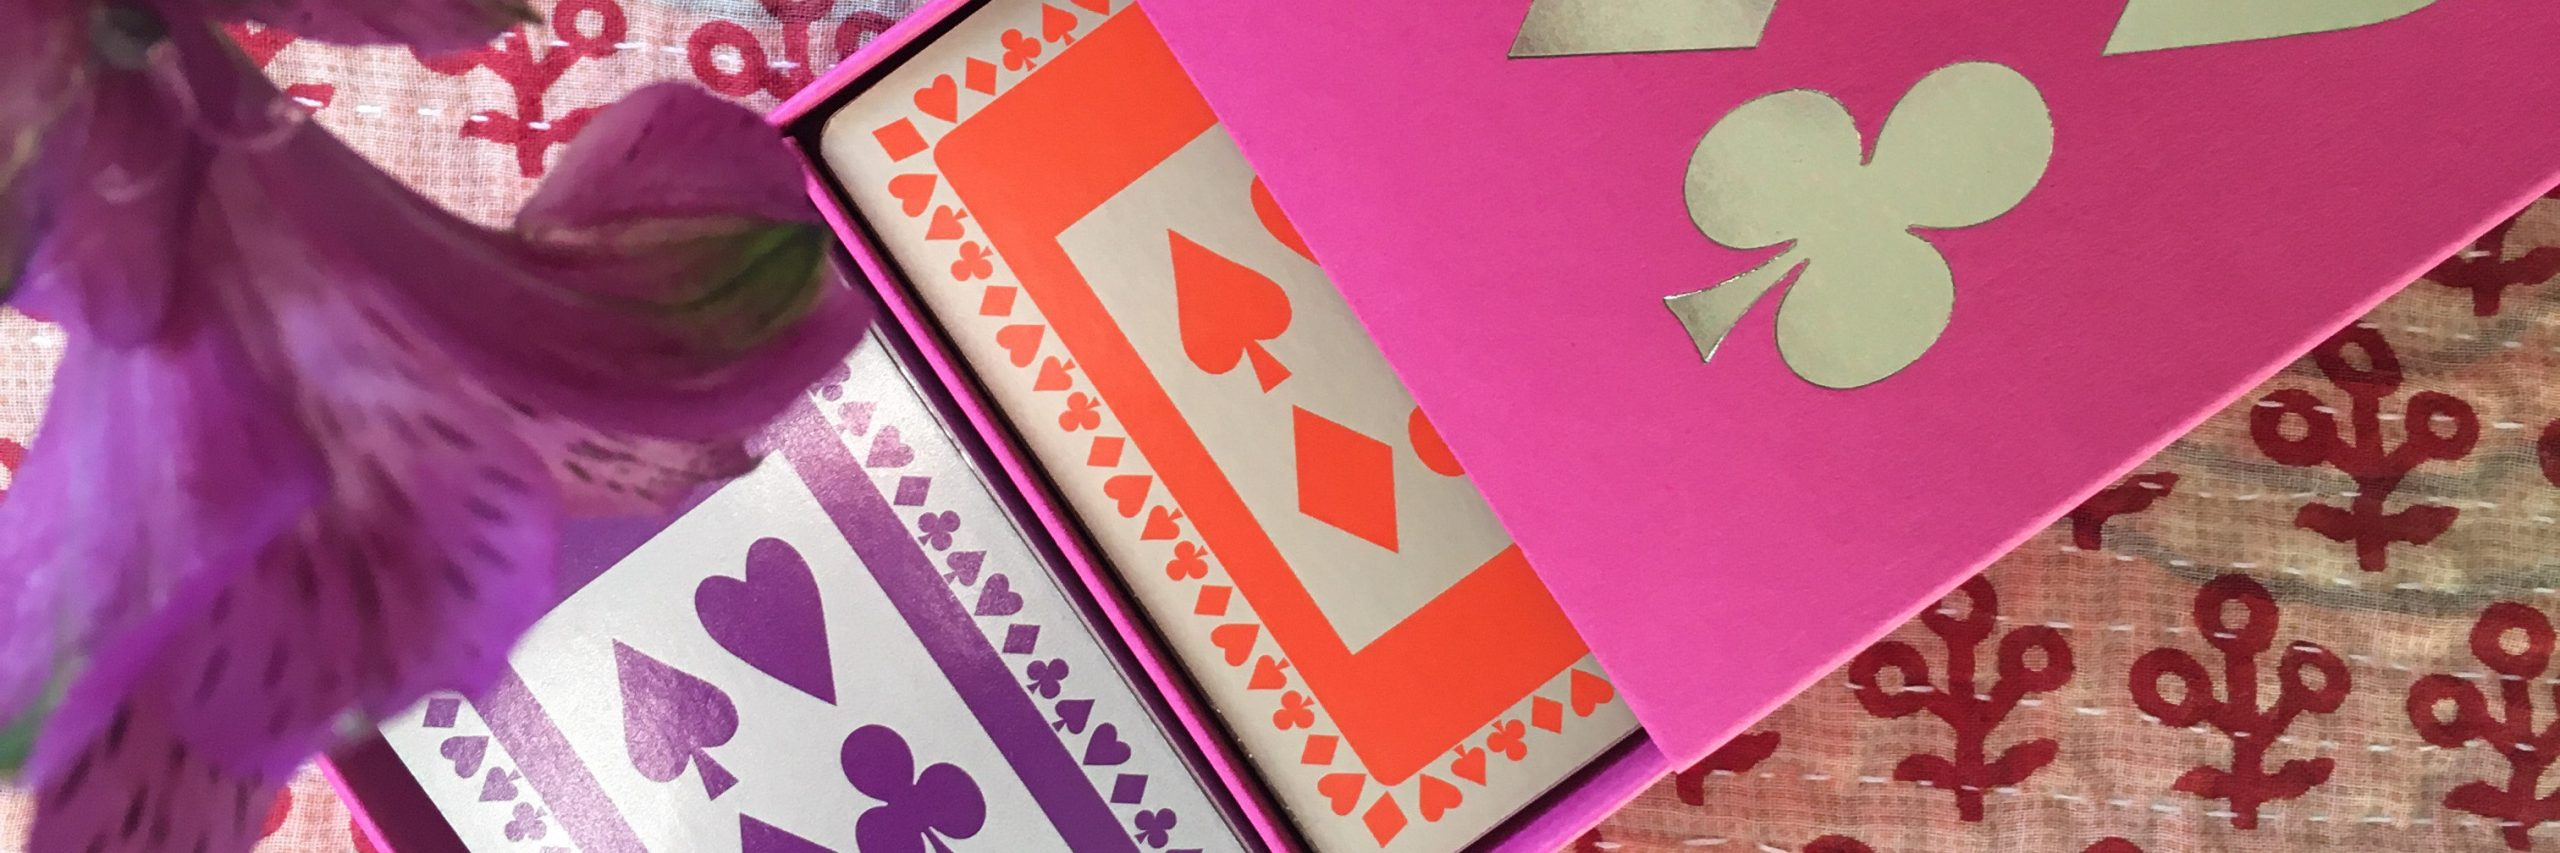 Masthead picture of purple and orange playing cards in pink box